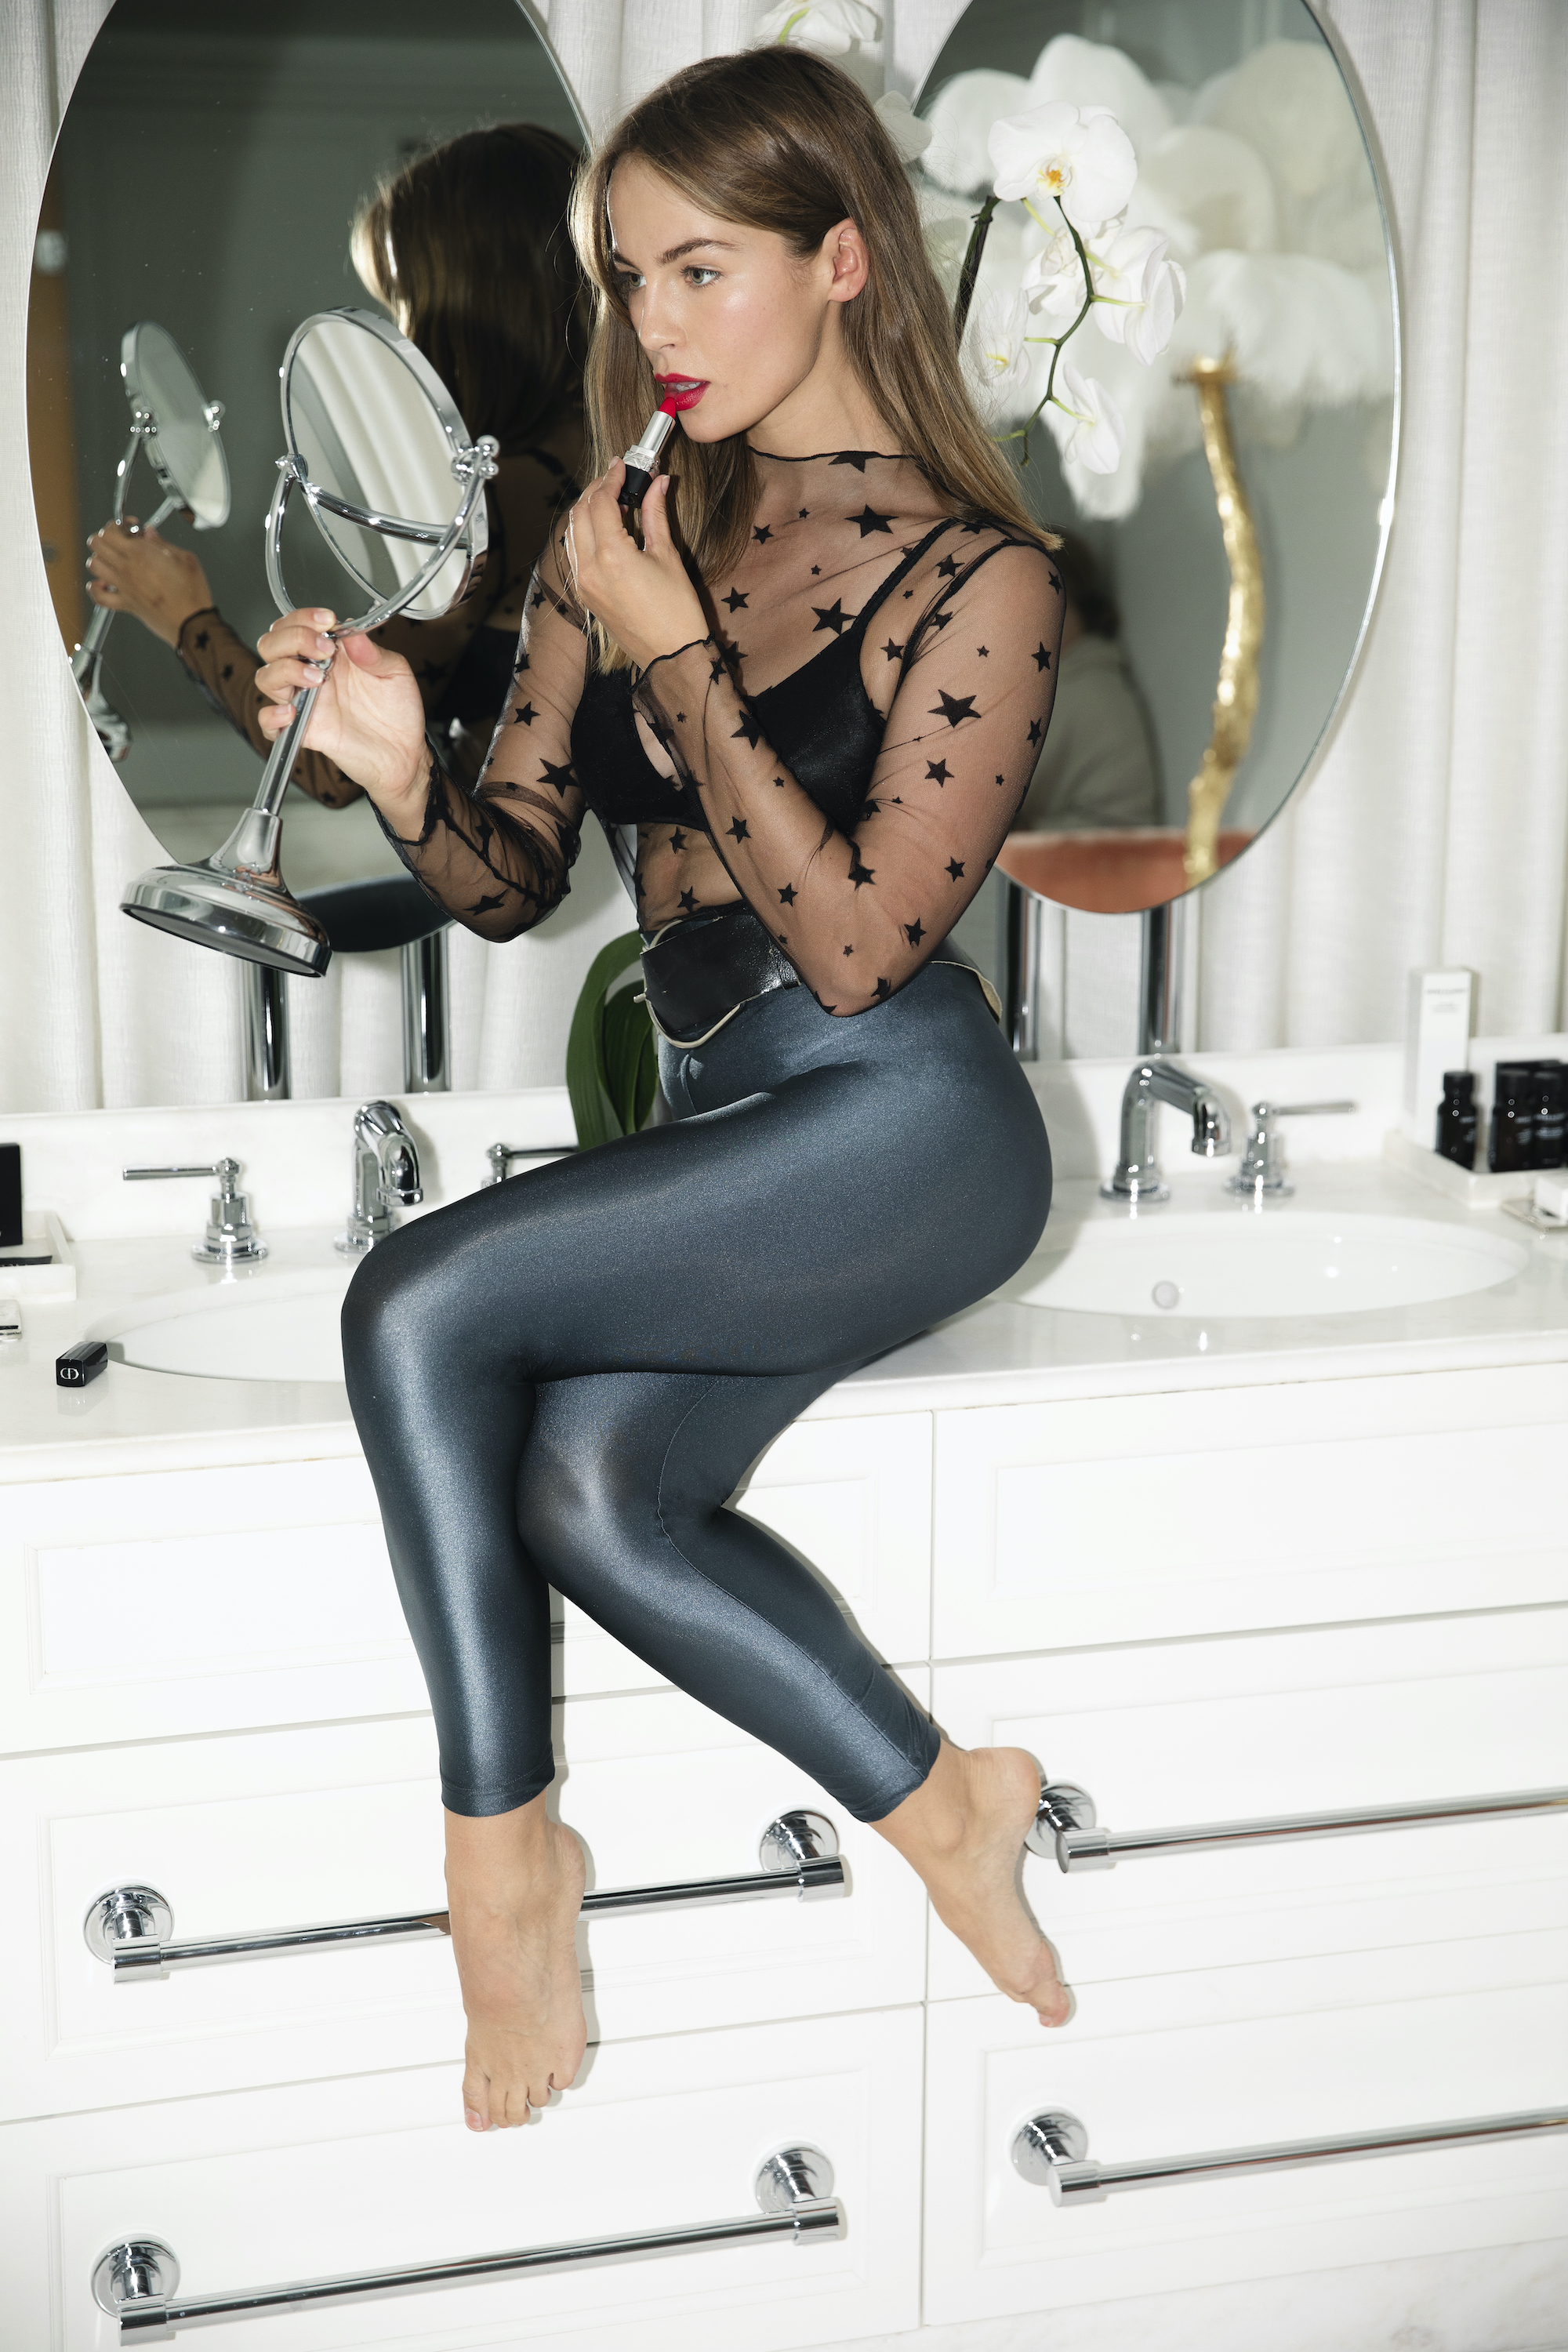 Wonderland Calzedonia Christmas campaign Emma Louise Connolly